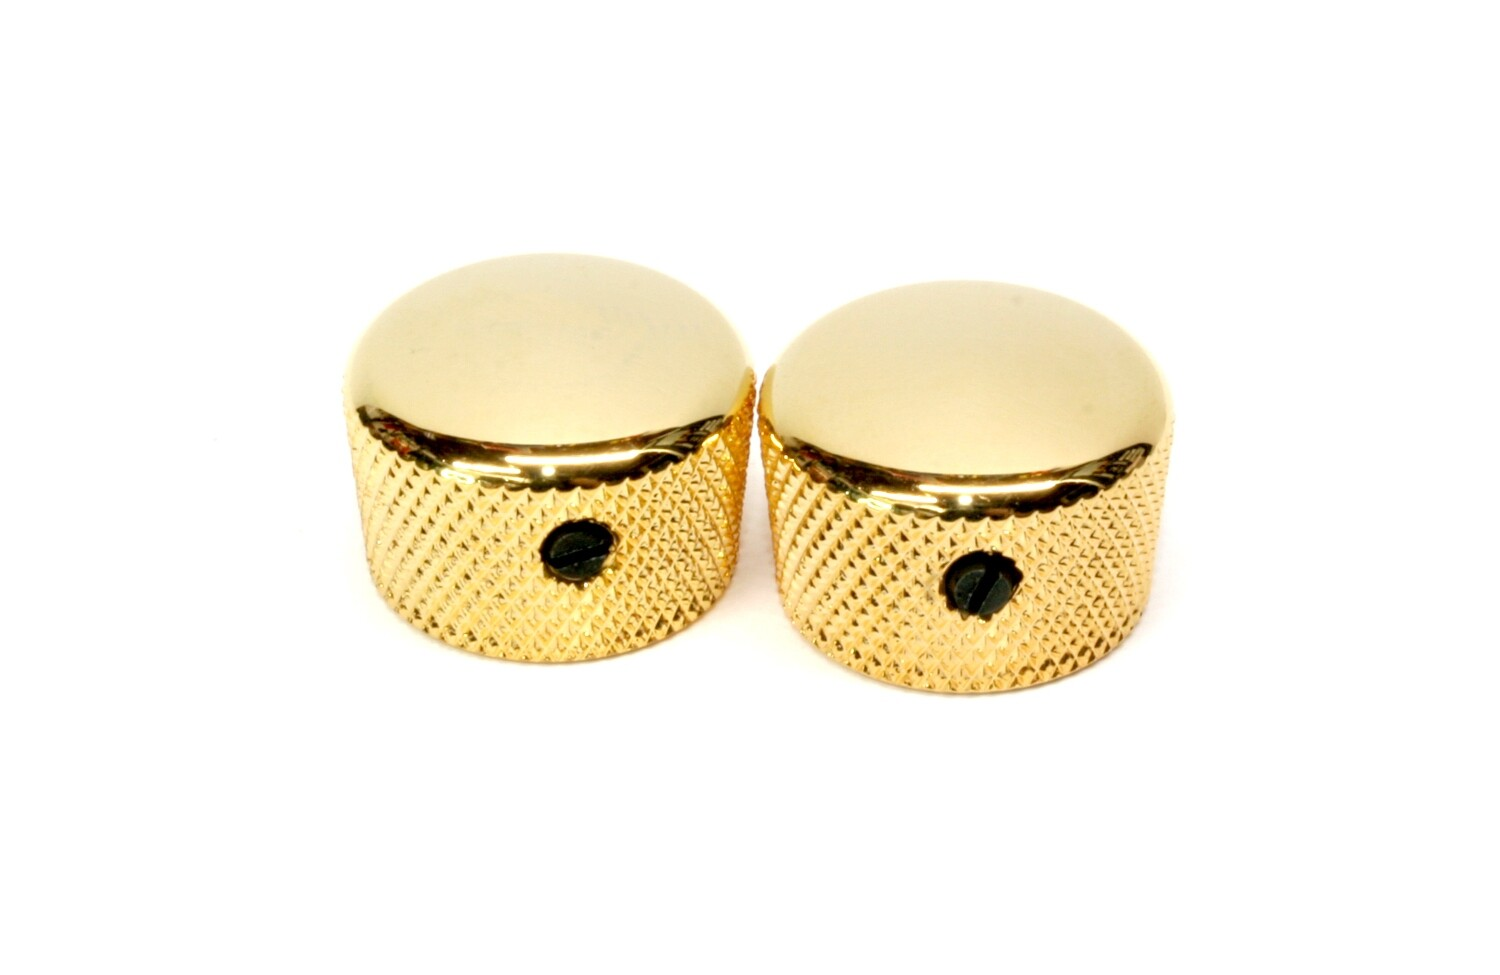 "Gold Cupcake metal knobs (2), with set screw, fits USA solid shaft pots.3/4"" wide."